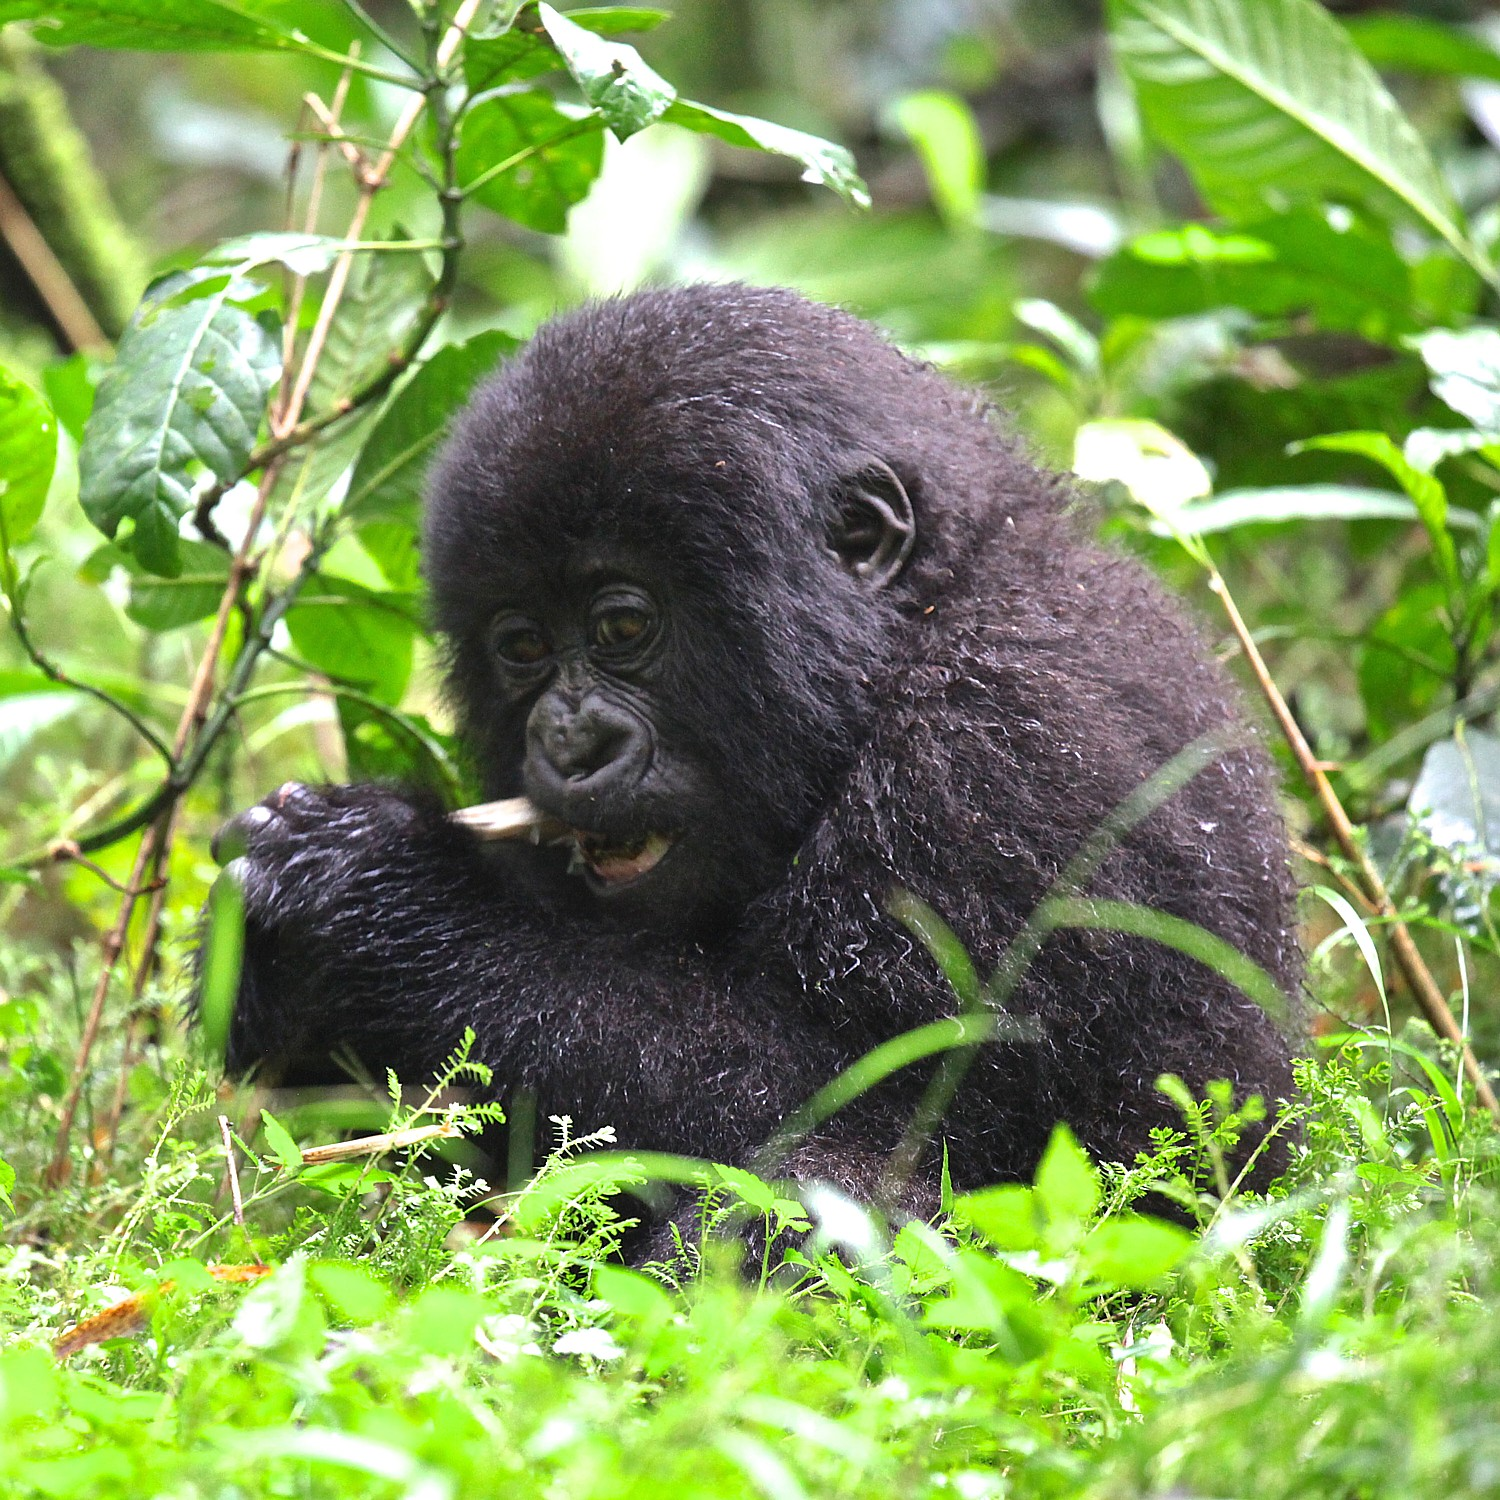 Encounter some of the last remaining mountain gorillas in the world on a Gondwana EcoTours trek into the lush forests of Rwanda  (photo: Gondwana EcoTours)